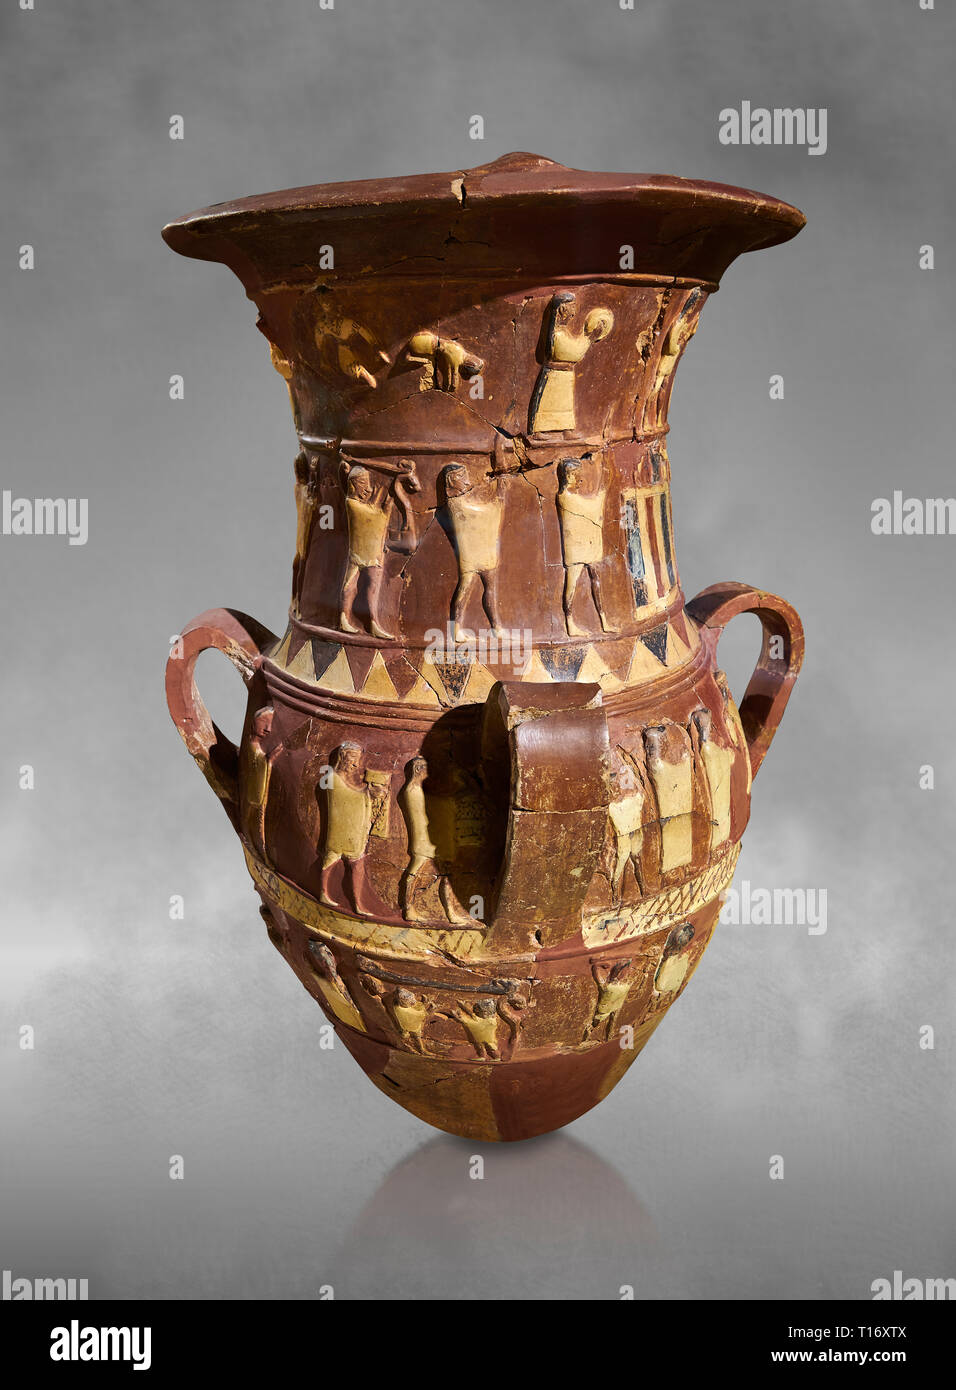 Inandik Hittite relief decorated cult libation vase with four decorative friezes featuring figures coloured in cream, red and black. The processional  - Stock Image